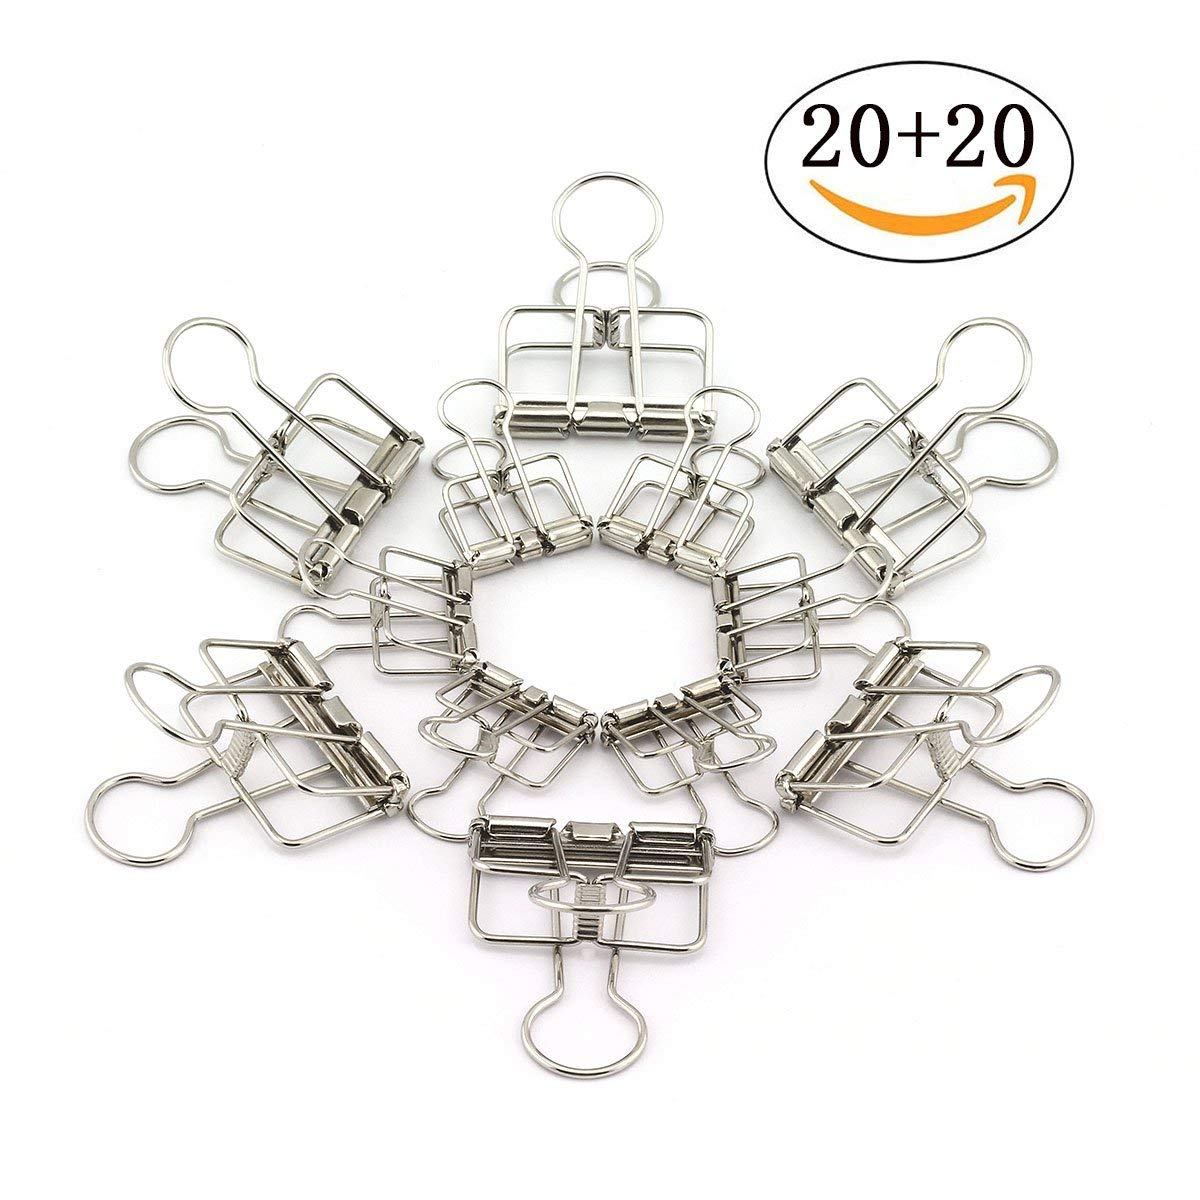 RuiLing 40-Pack Multi-purpose Metal Wire Binder Clip Set,20pcs 2.25 Inch & 20pcs 1.57 Inch Paper Metal Clips,for Home Office Supplier School Accessories - Silver